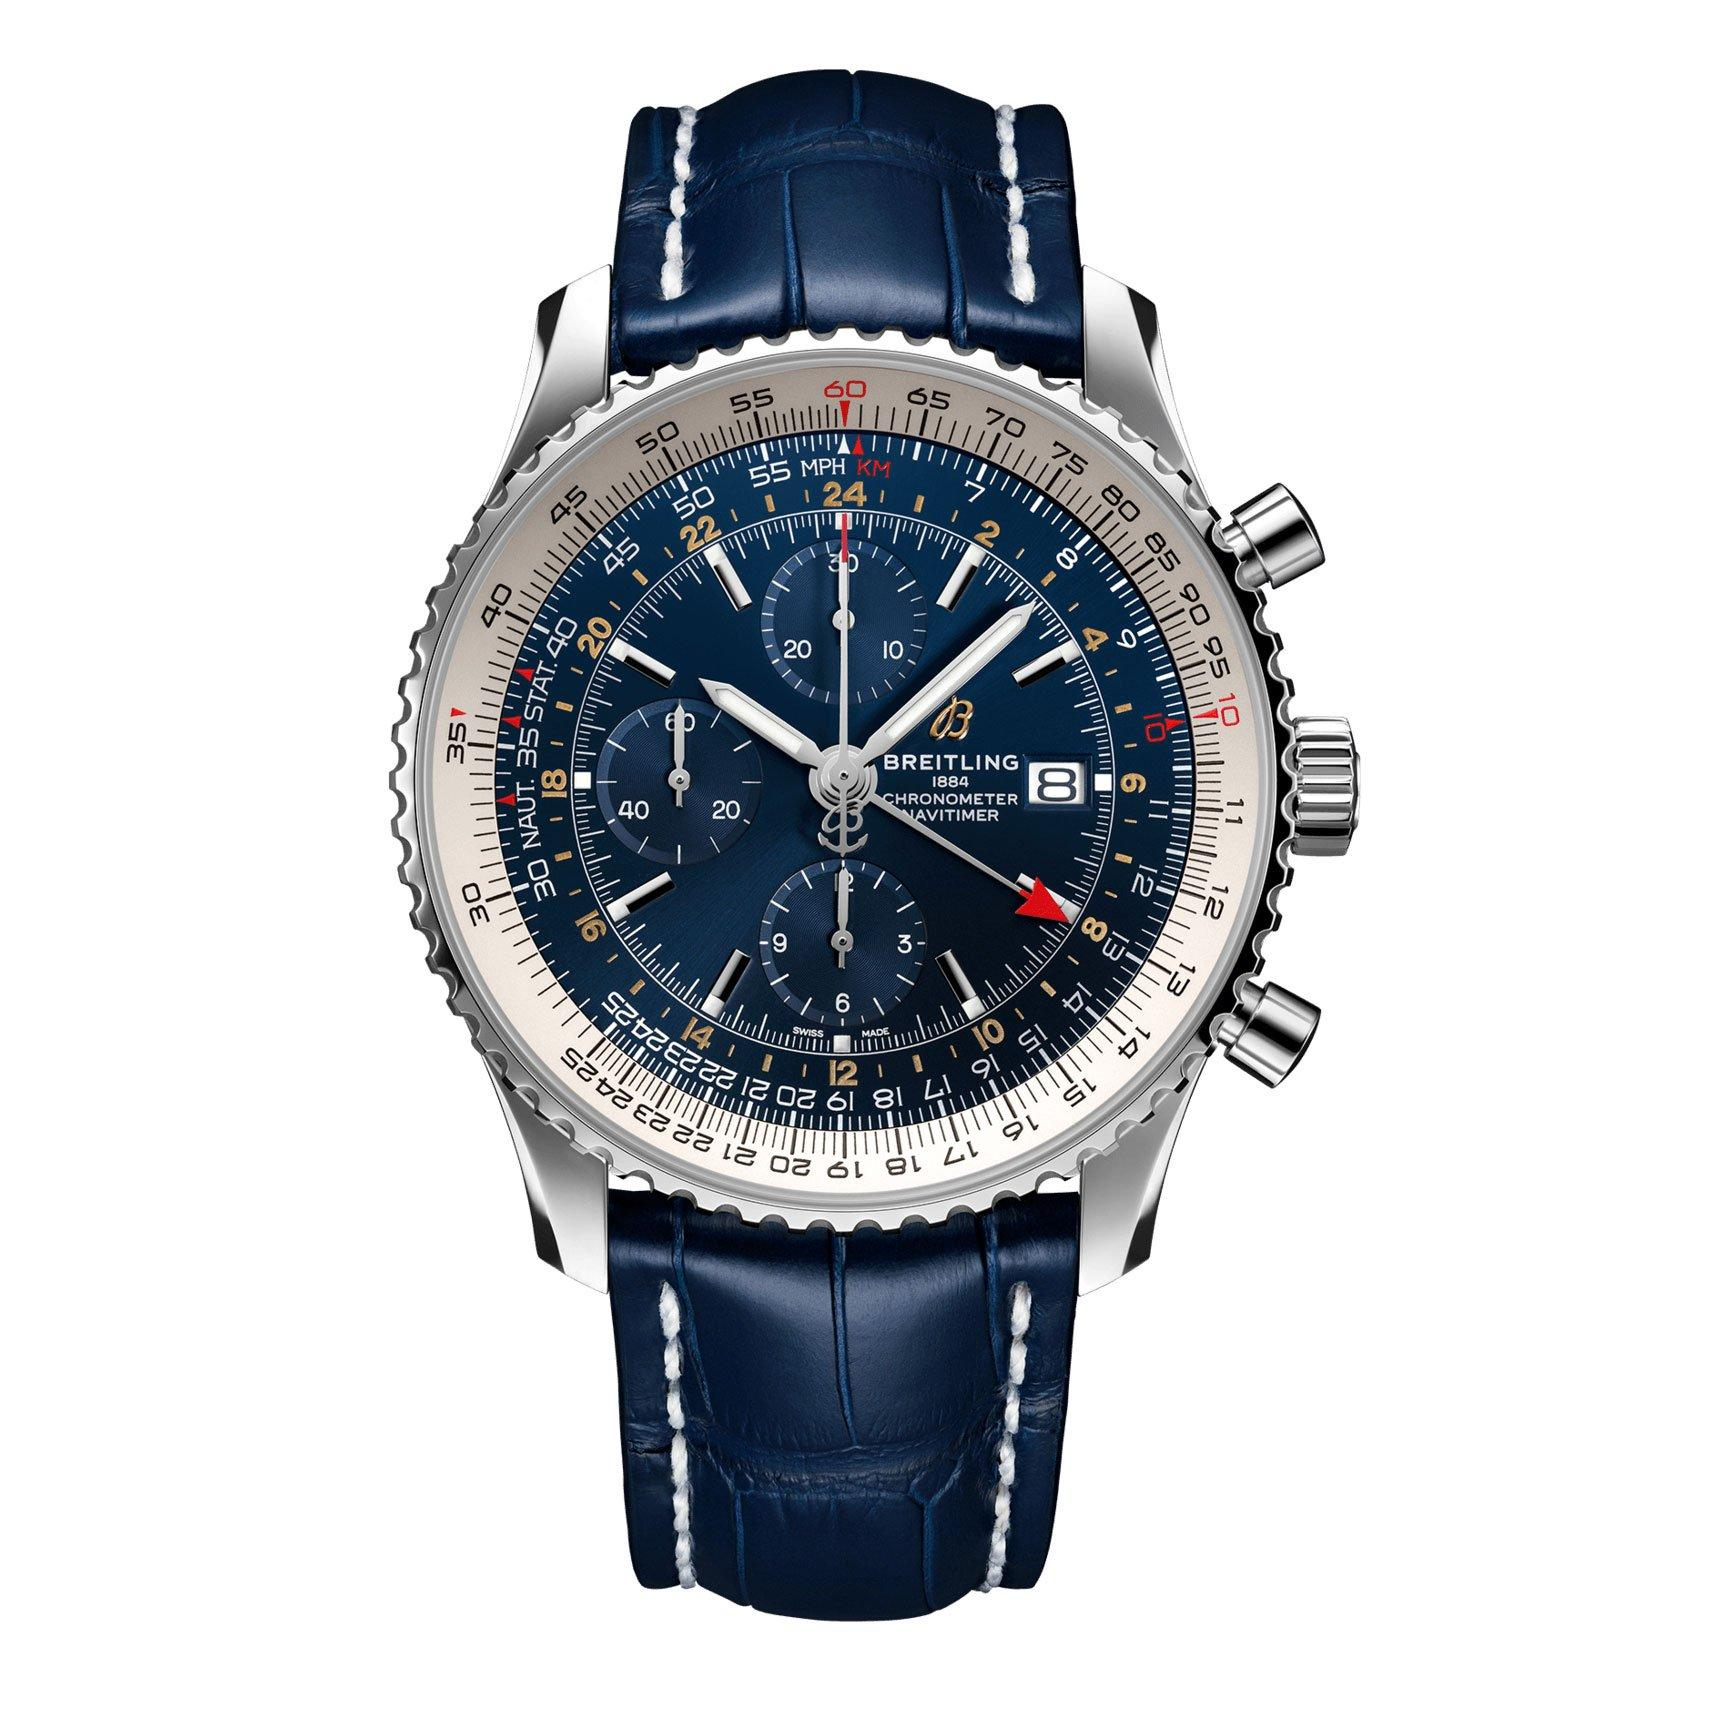 Breitling Navitimer Chronograph GMT 46 Automatic Men's Watch